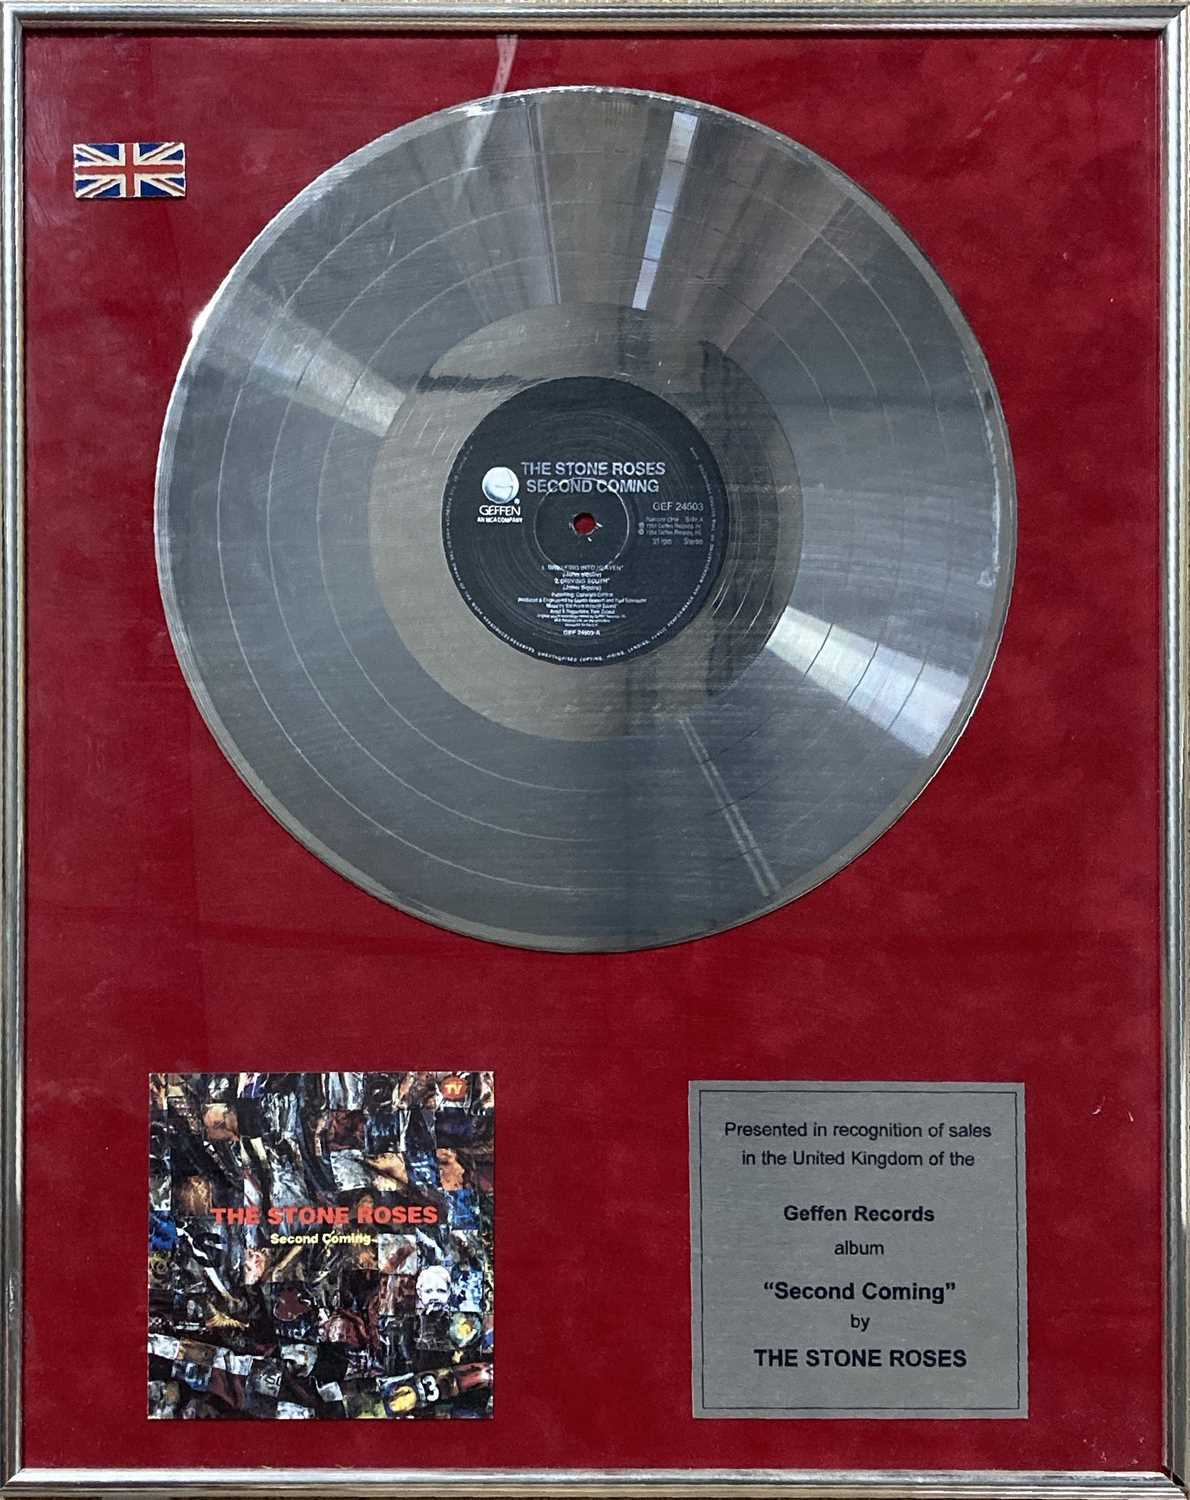 STONE ROSES SECOND COMING AWARD.